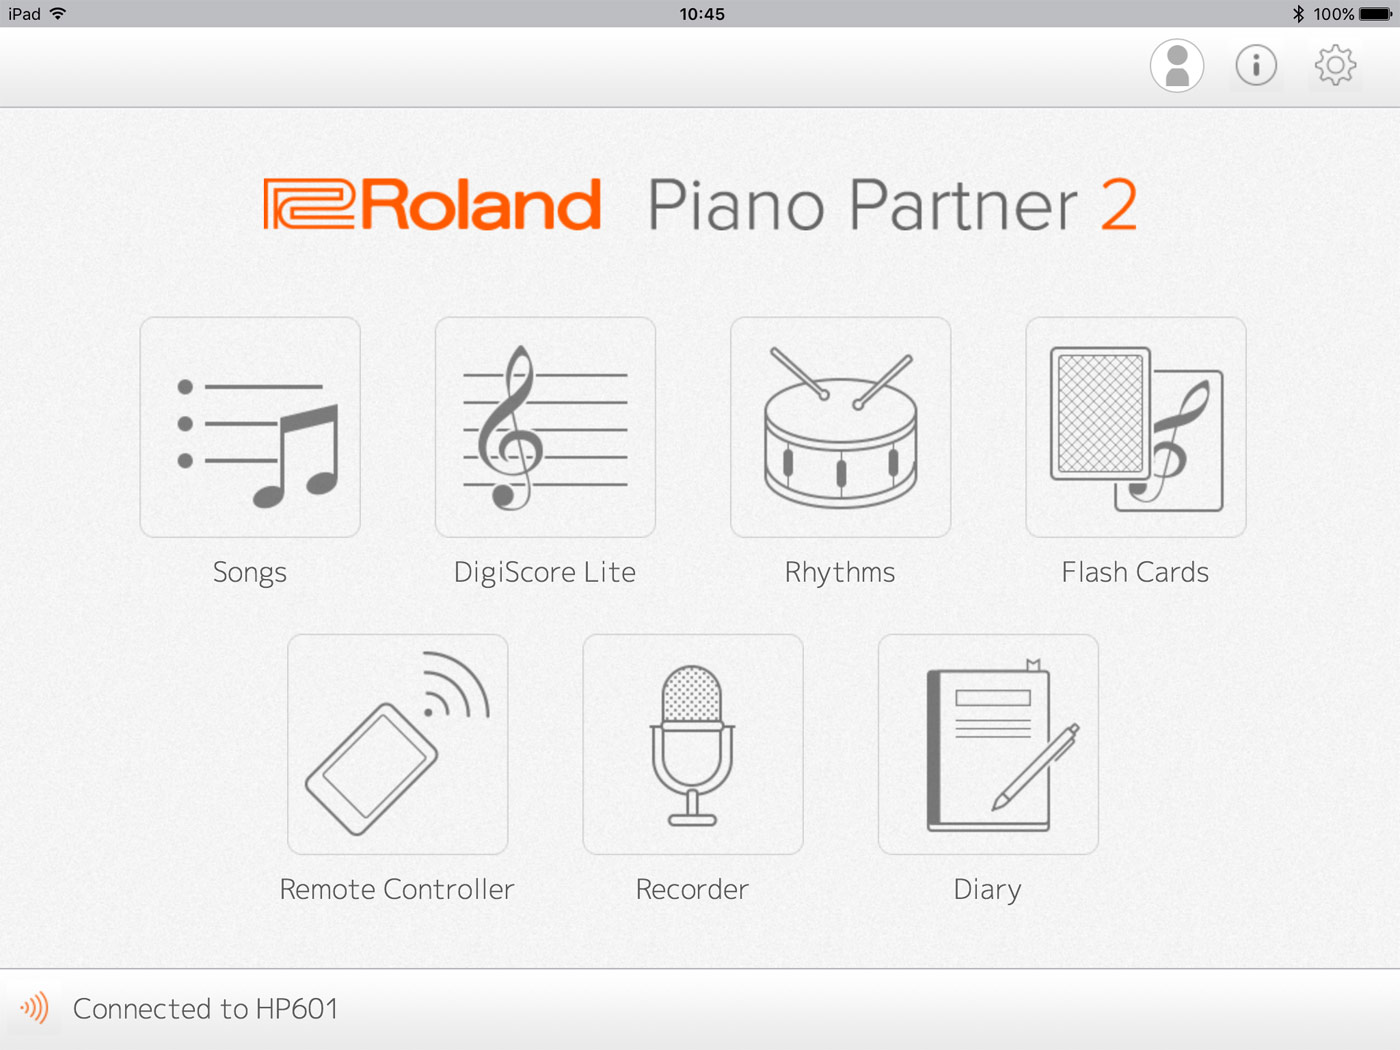 Roland Piano Partner 2 Version 20 Ios Android App Usb Cable Wiring Diagram Together With Of Ipad Back Smoothly Due To The Way That Device Manages Bluetooth Communication If This Occurs Connect Via A